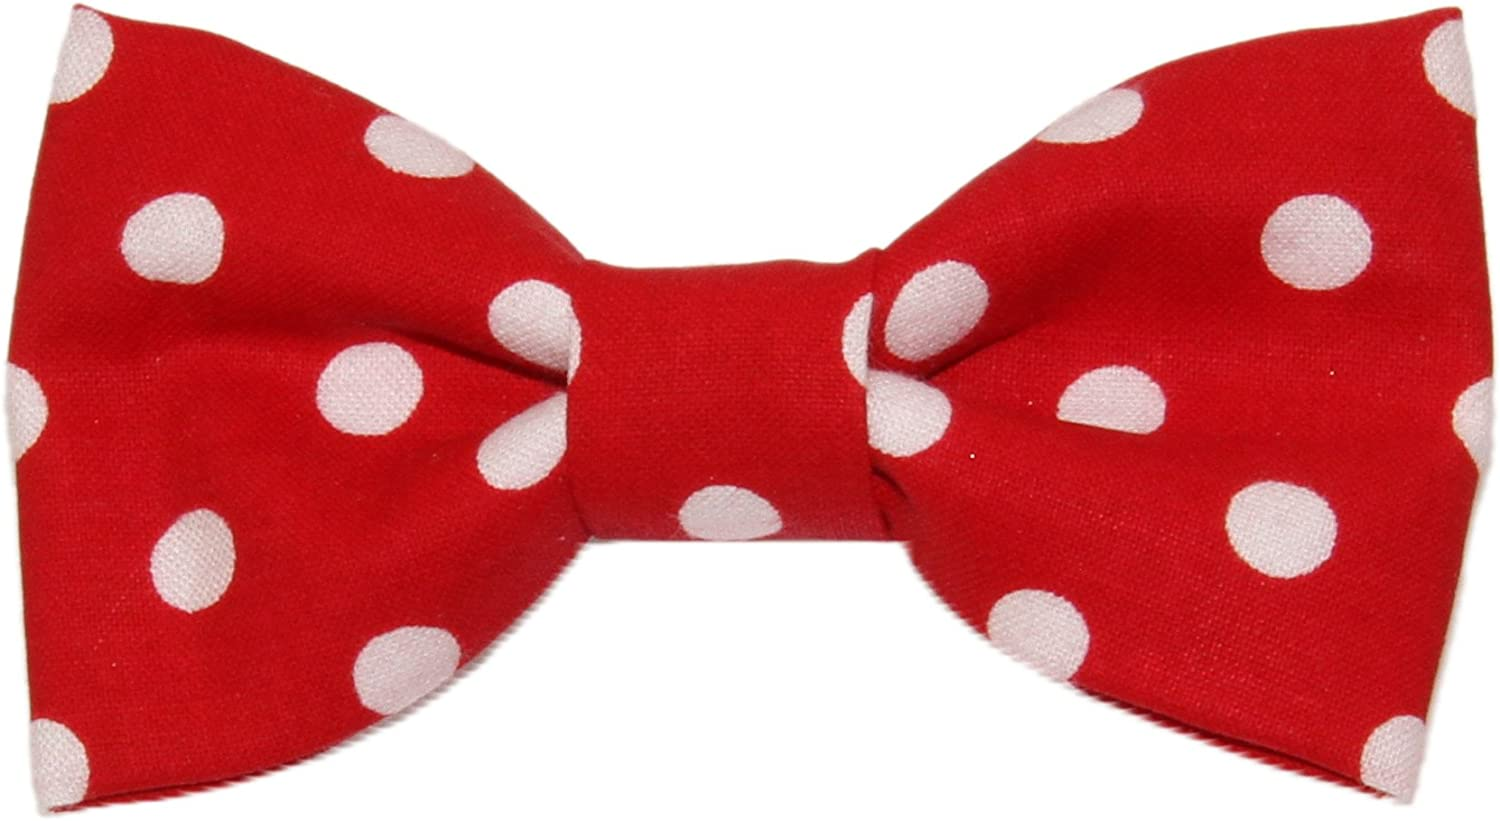 Toddler Boy 4T 5T Red With White Polka Dots Clip On Cotton Bow Tie - Made in USA